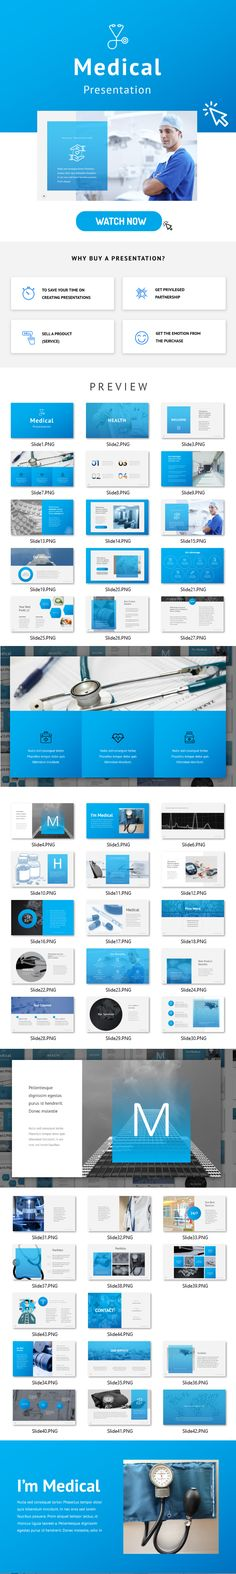 Medical - Powerpoint Template